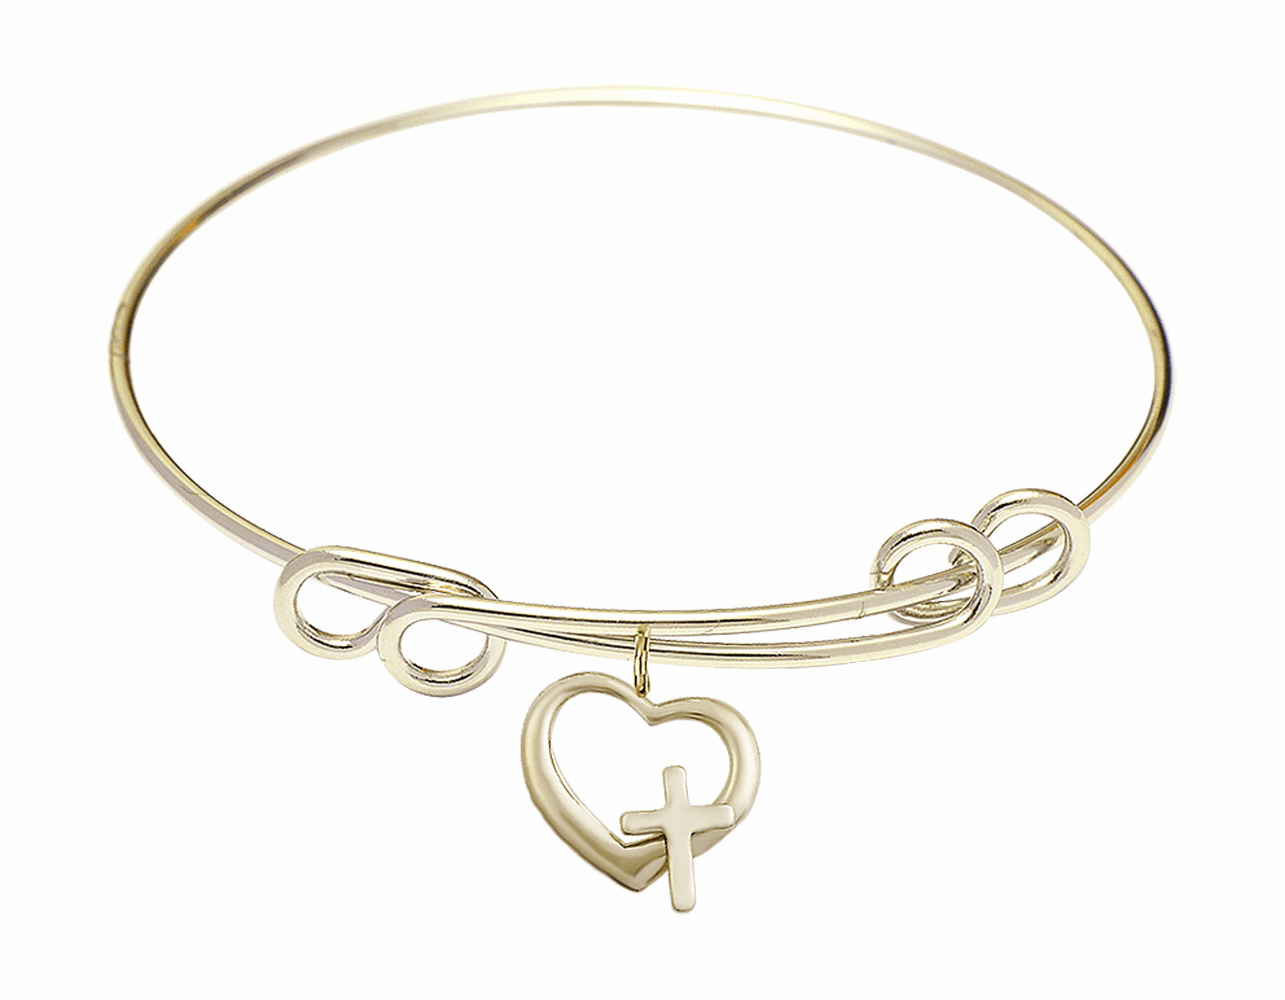 Round Double Loop Bangle Bracelet w/Heart with Cross by Bliss Mfg